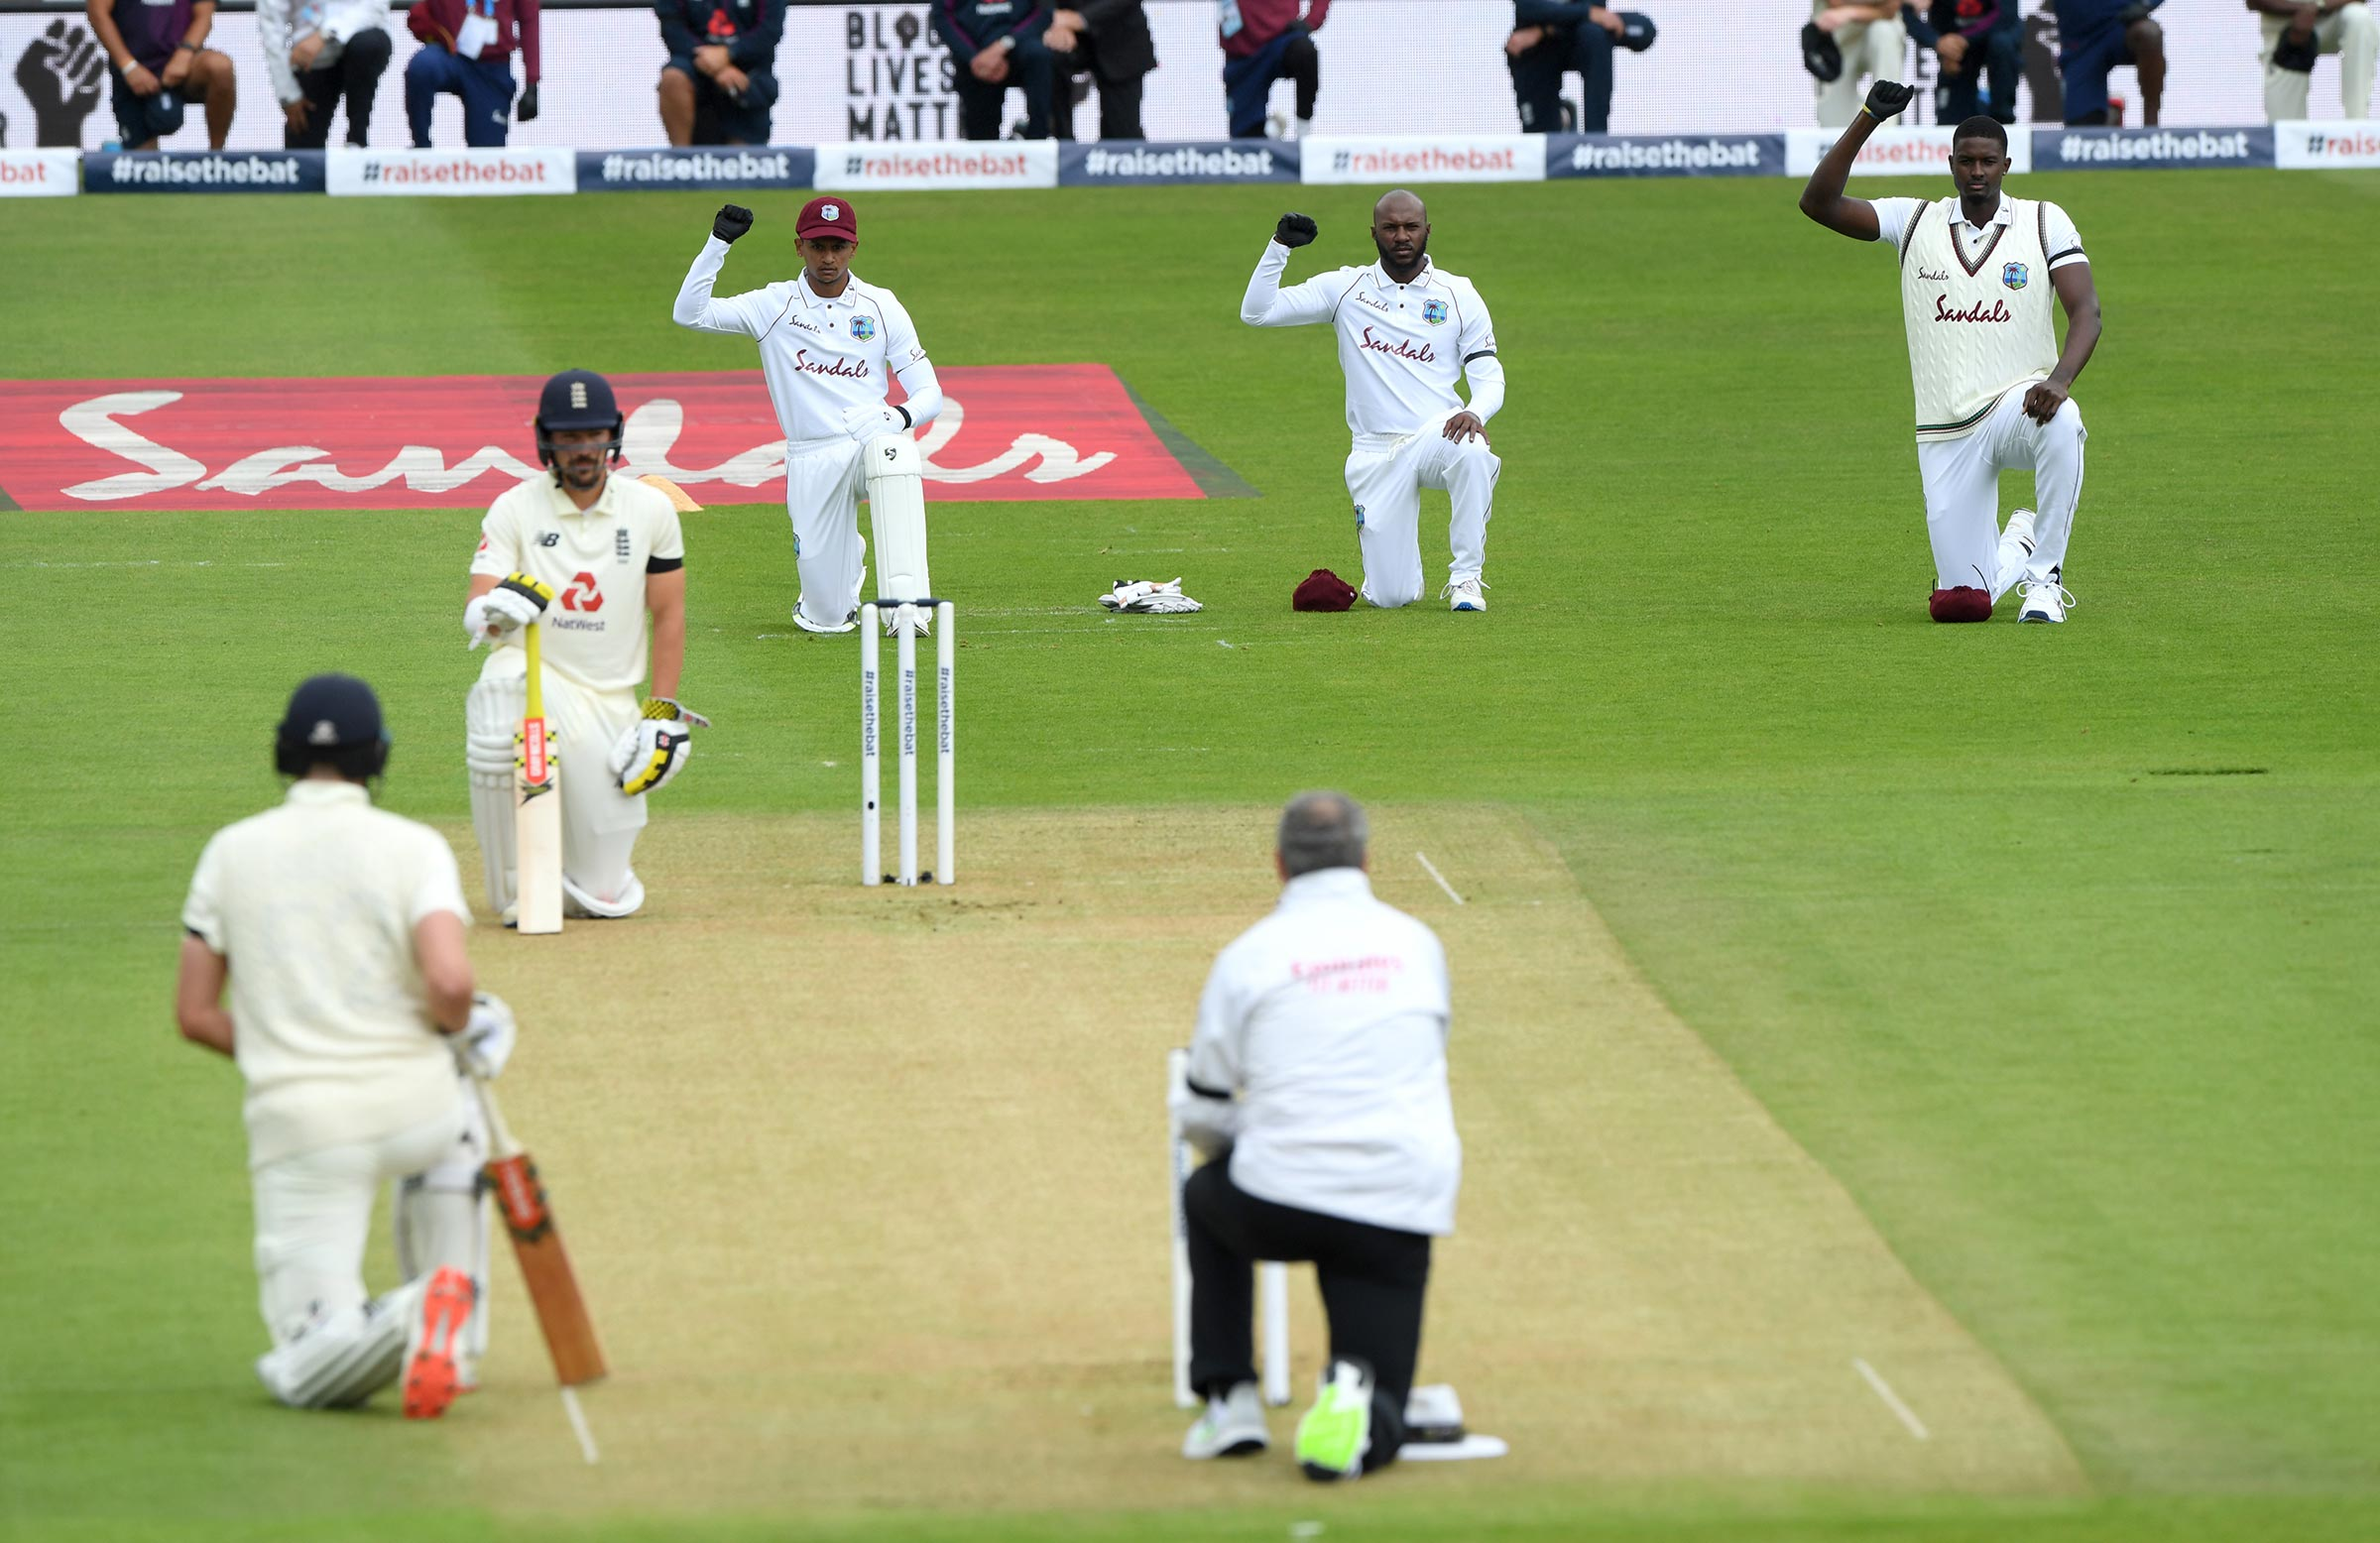 England's batters and the West Indies' fielders take a knee ahead of the first Test in Southampton // Getty